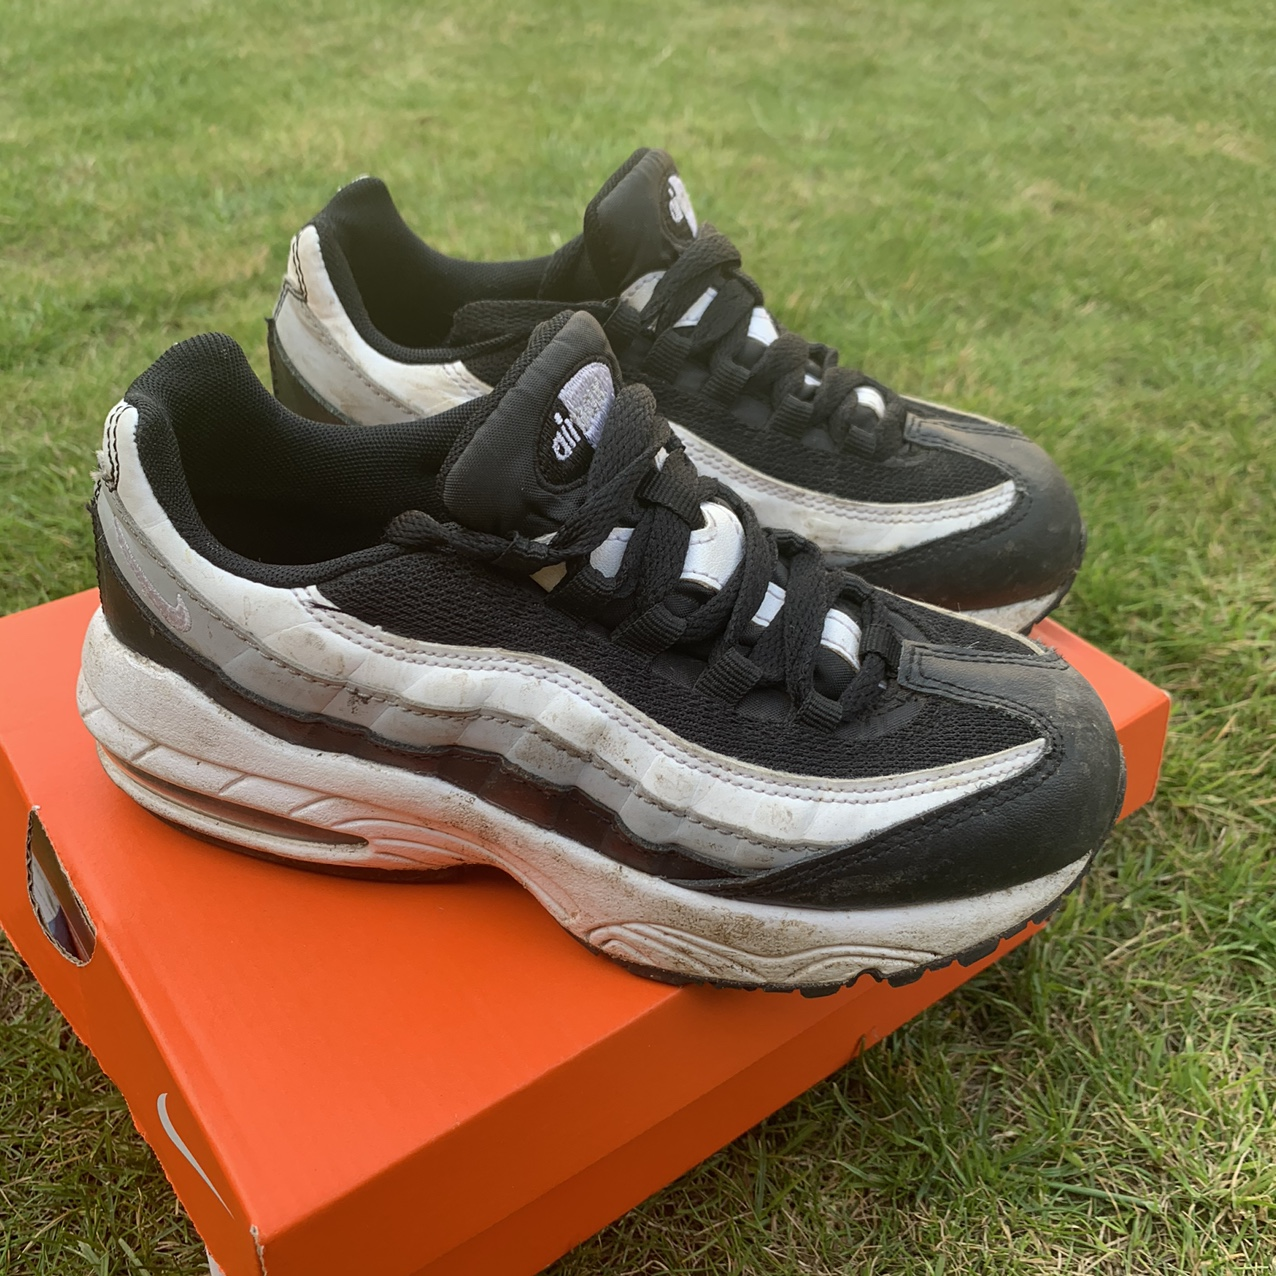 Nike air max 95 kids size 13 - very